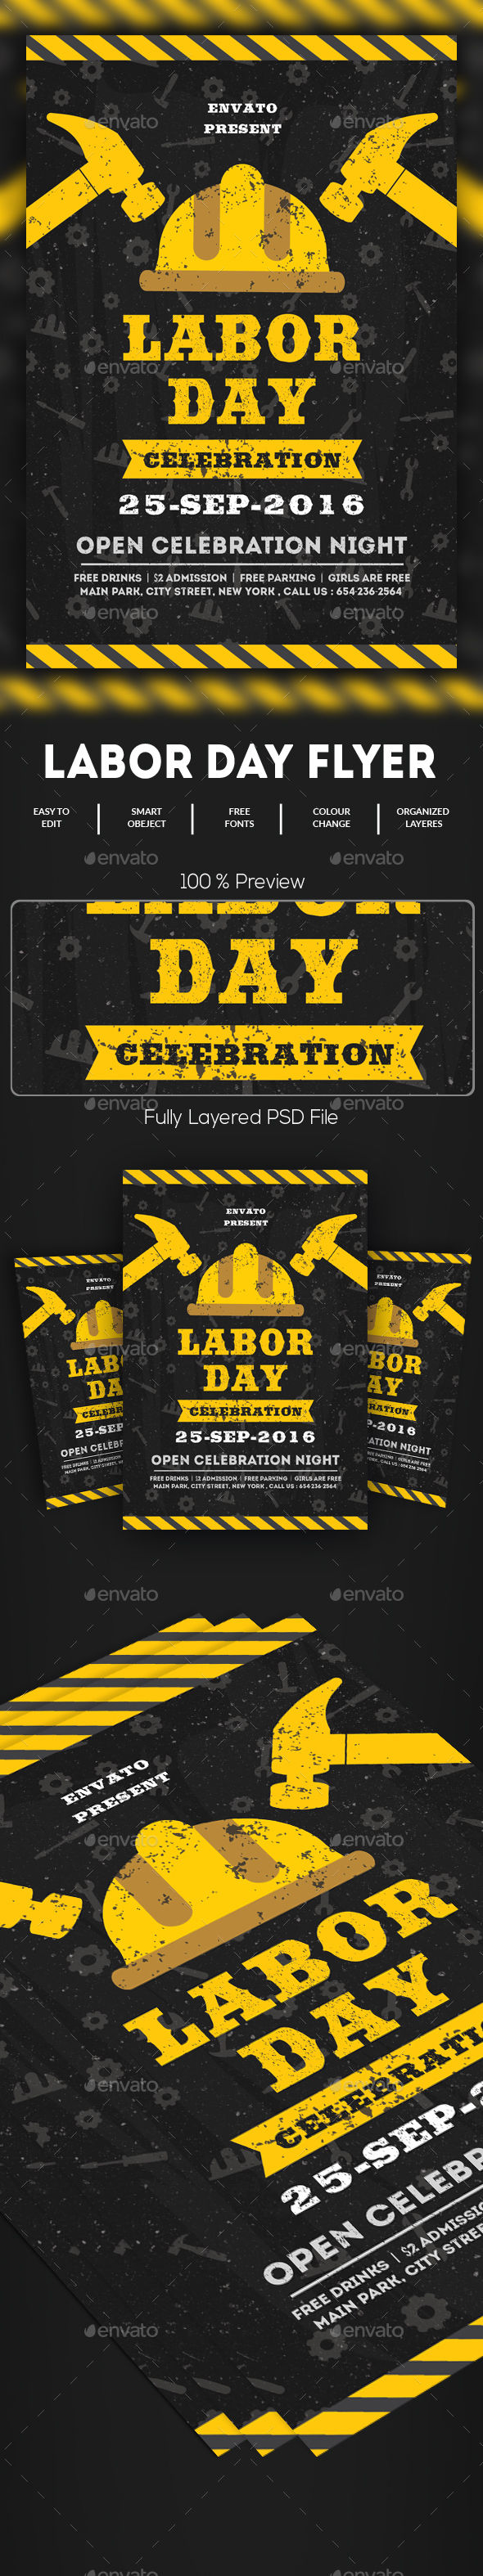 Labor Day Flyer by GOURAVDESIGNS (Labor Day party flyer)